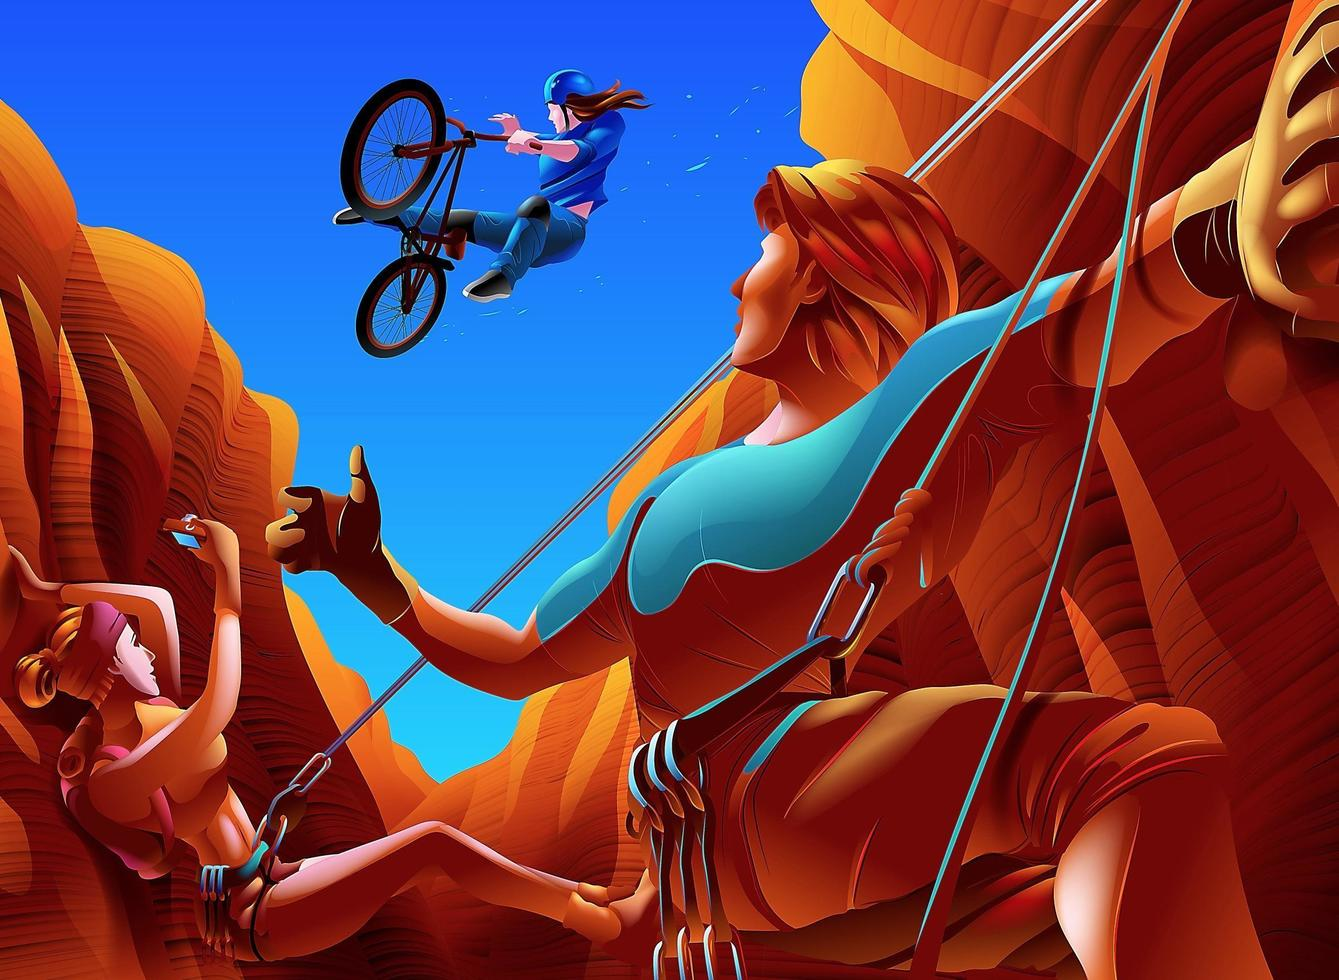 Couple climbing in between a Canyon groove and cyclist jumping across vector